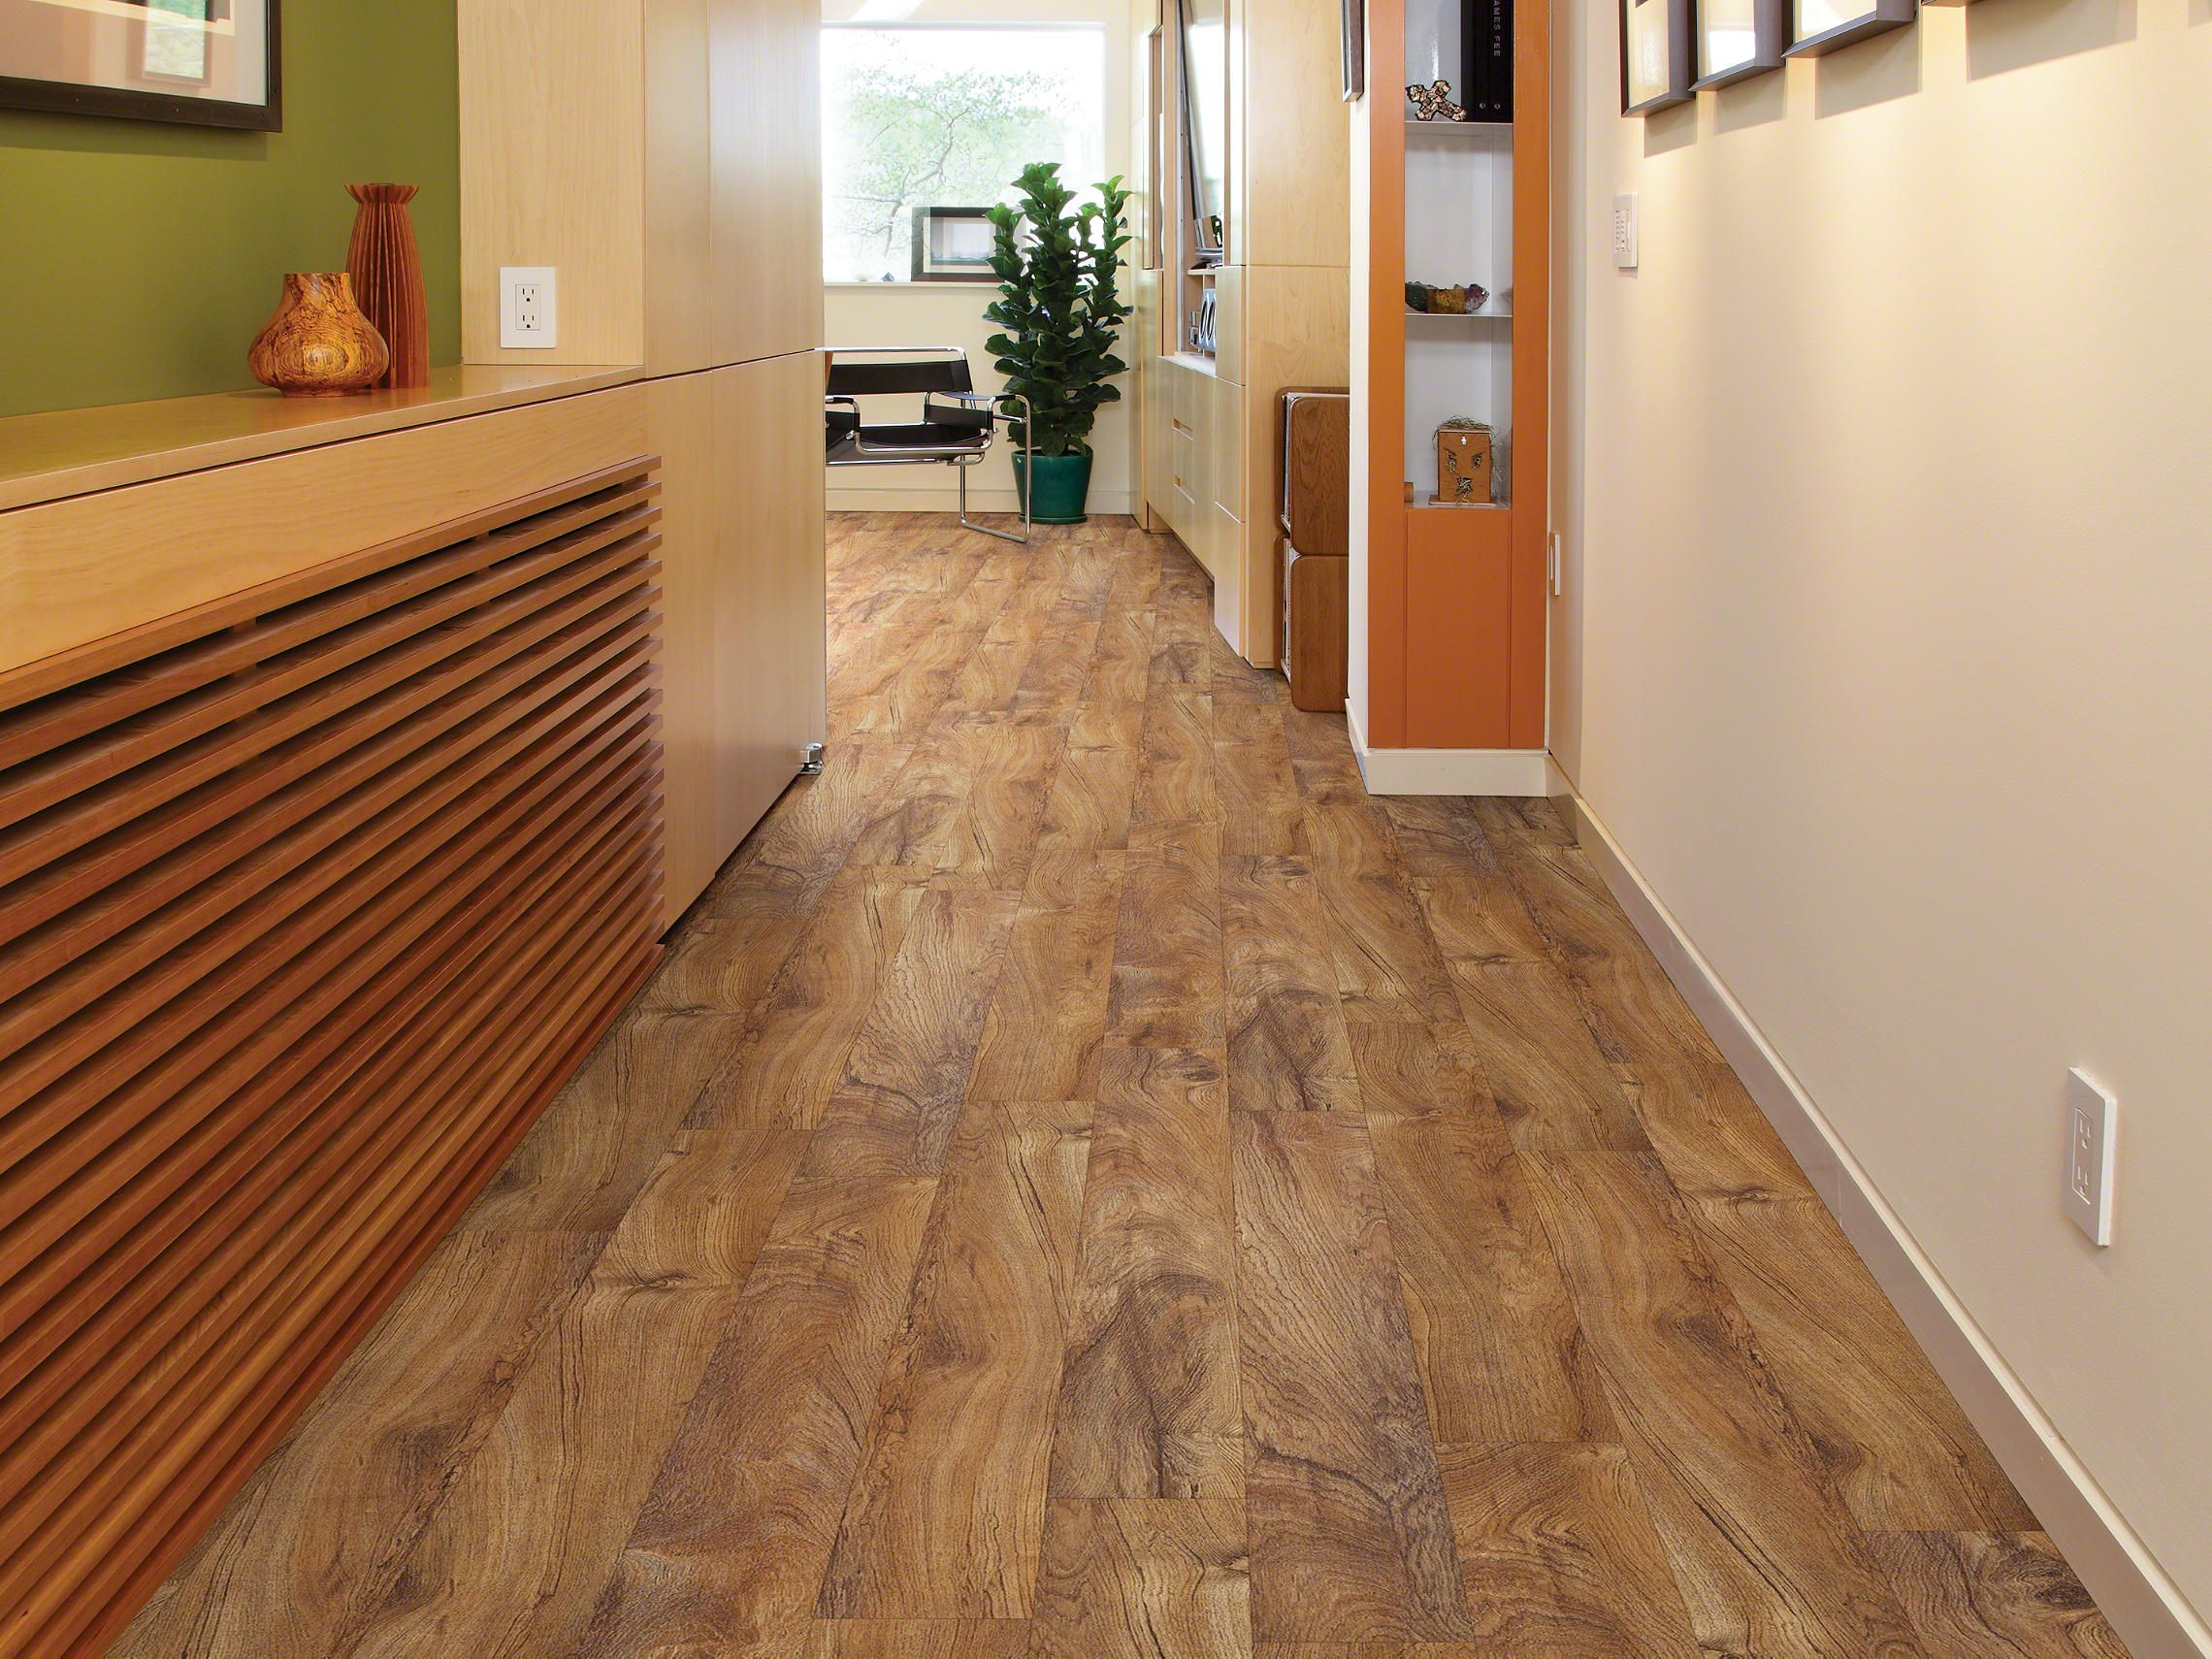 9 best floors images on pinterest vinyl flooring flooring and resilient chatham plank rainforest teak flooring by shaw dailygadgetfo Gallery